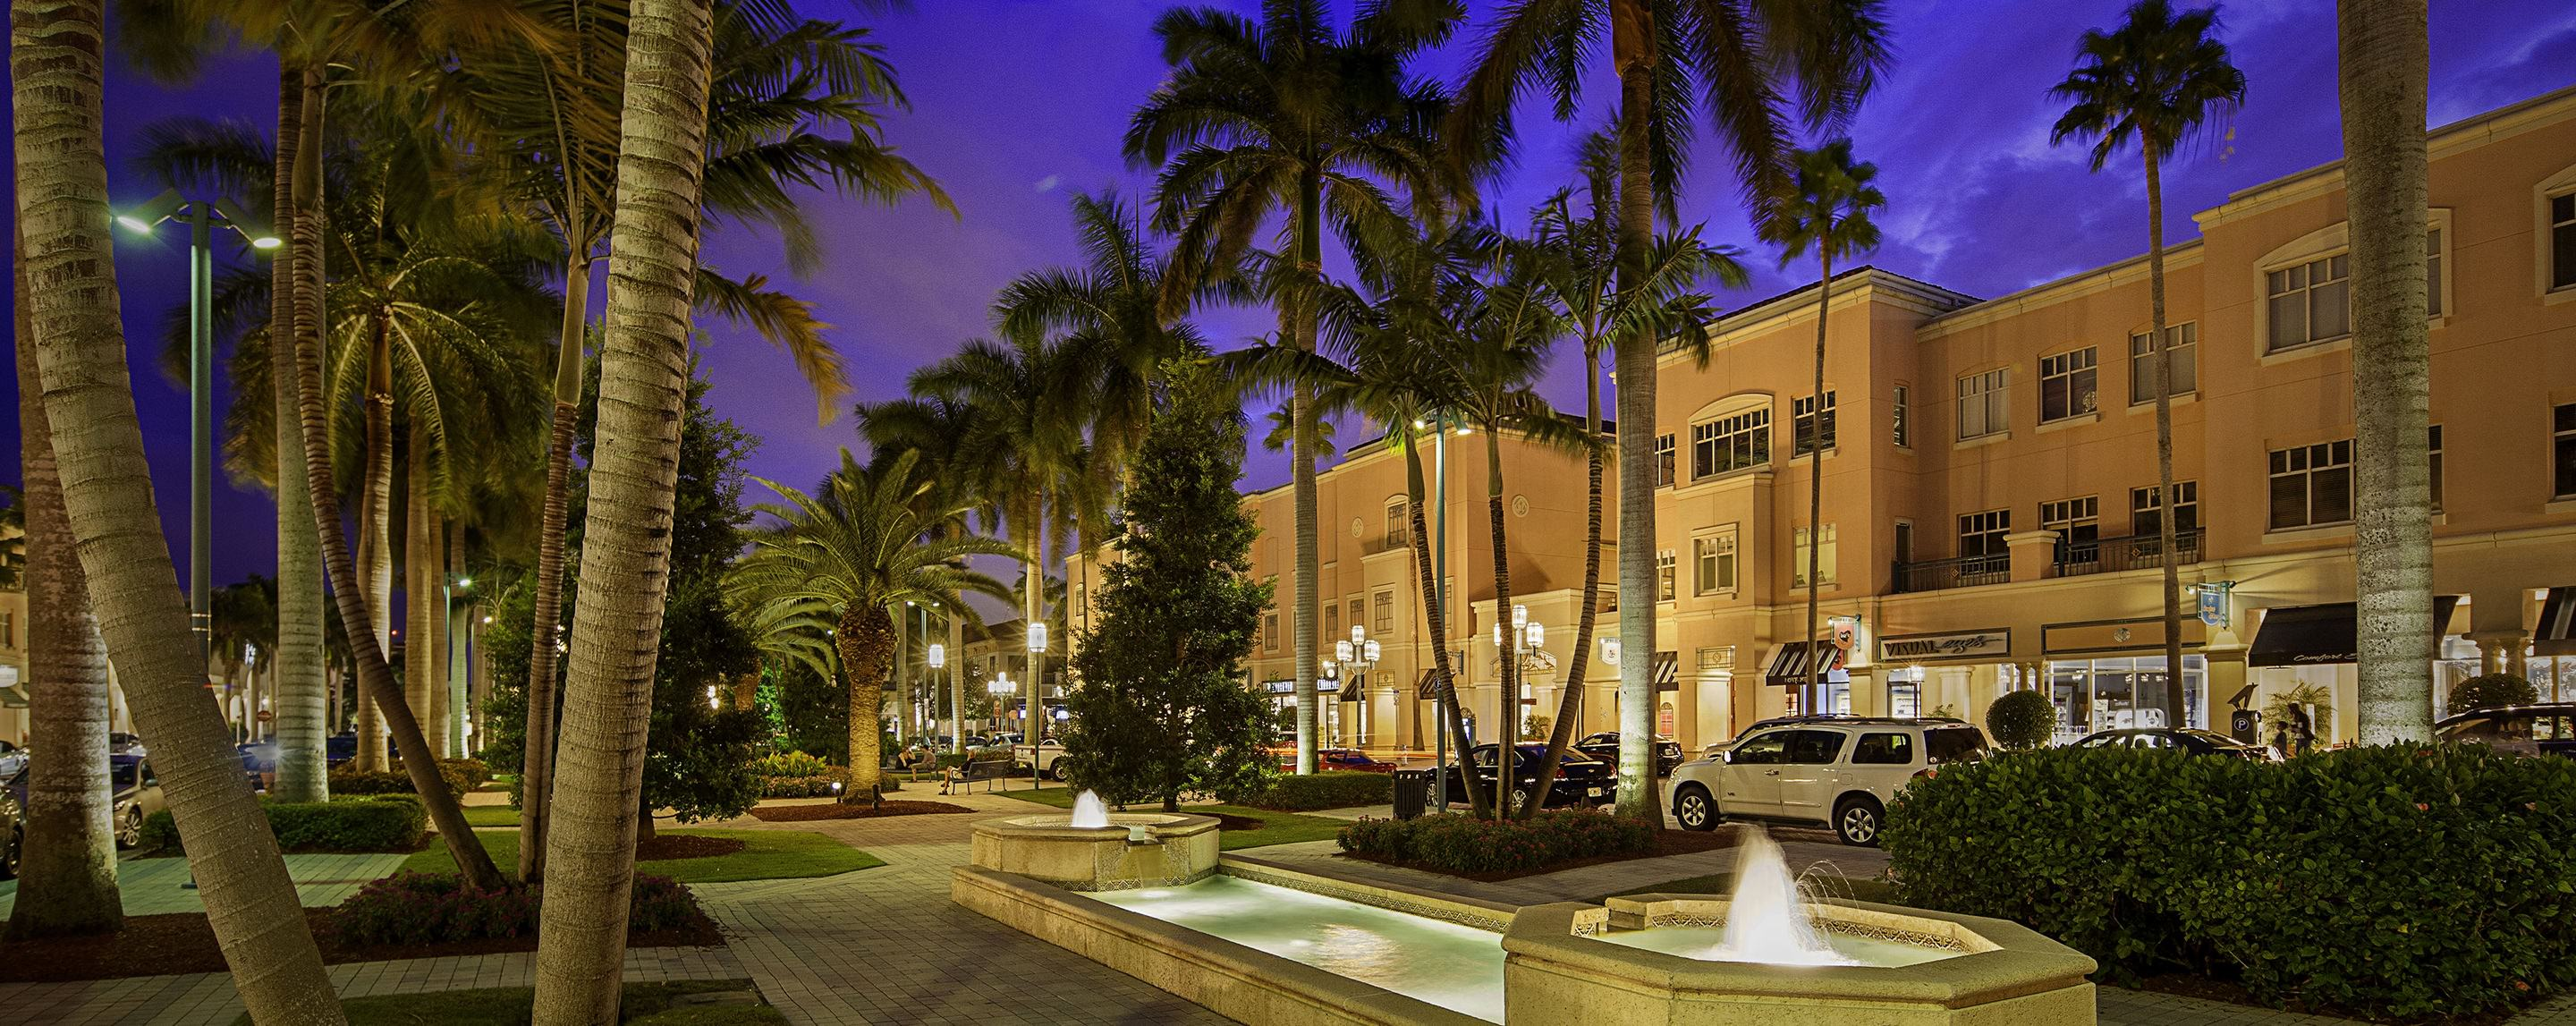 At night, palm trees and a decorative fountain can be seen in front of the Minzer Park exterior storefronts.